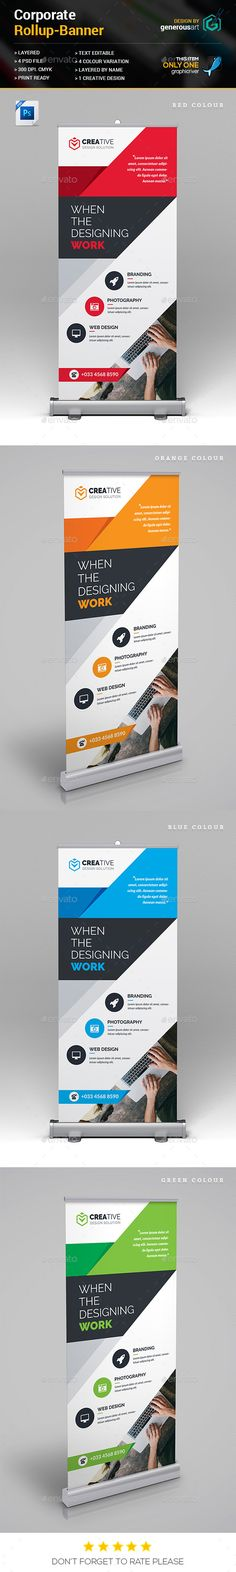 Rollup Banner by generousart File Information: Easy Customizable and EditableSize in with bleedCMYK ColorDesign in 300 DPI ResolutionPrint Ready Format Signage Design, Brochure Design, Brochure Template, Flyer Design, Layout Design, Web Design, Banner Design Inspiration, Packaging Design Inspiration, Banner Template